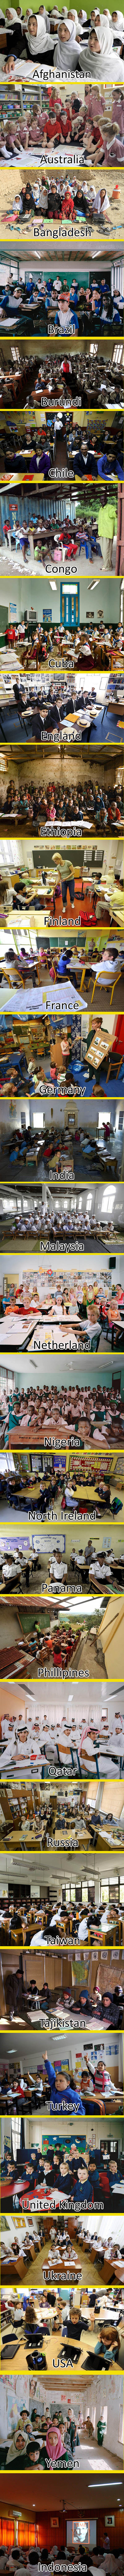 schools-around-the-world